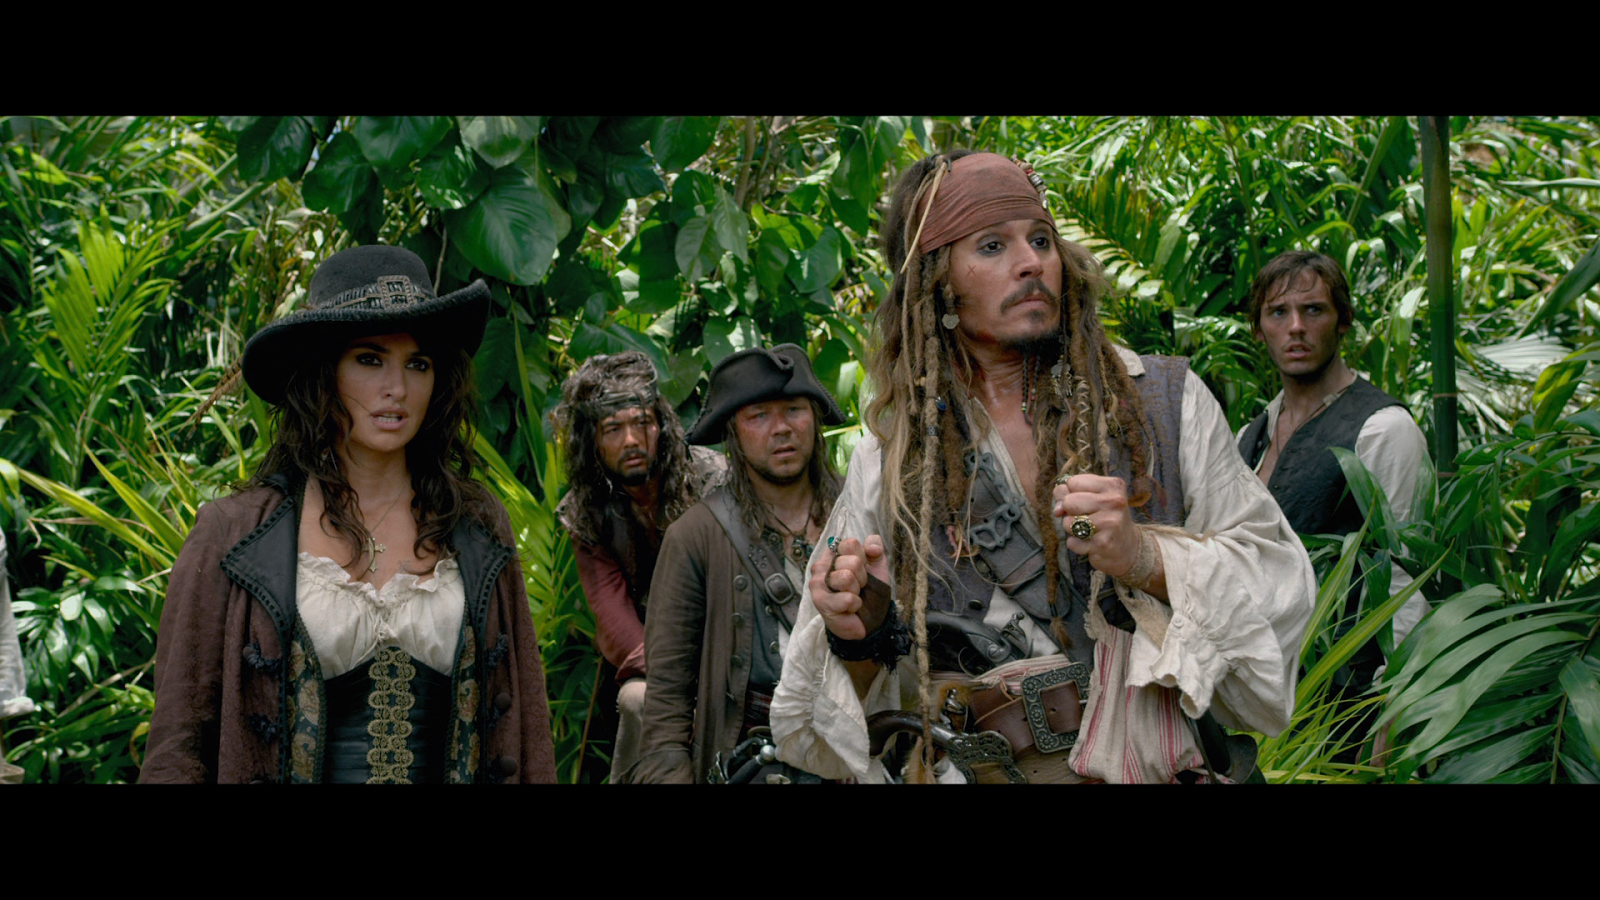 Piratas del Caribe 4: Navegando en Aguas Misteriosas (2011) BRRip Full HD 1080p Latino - Ingles captura 4